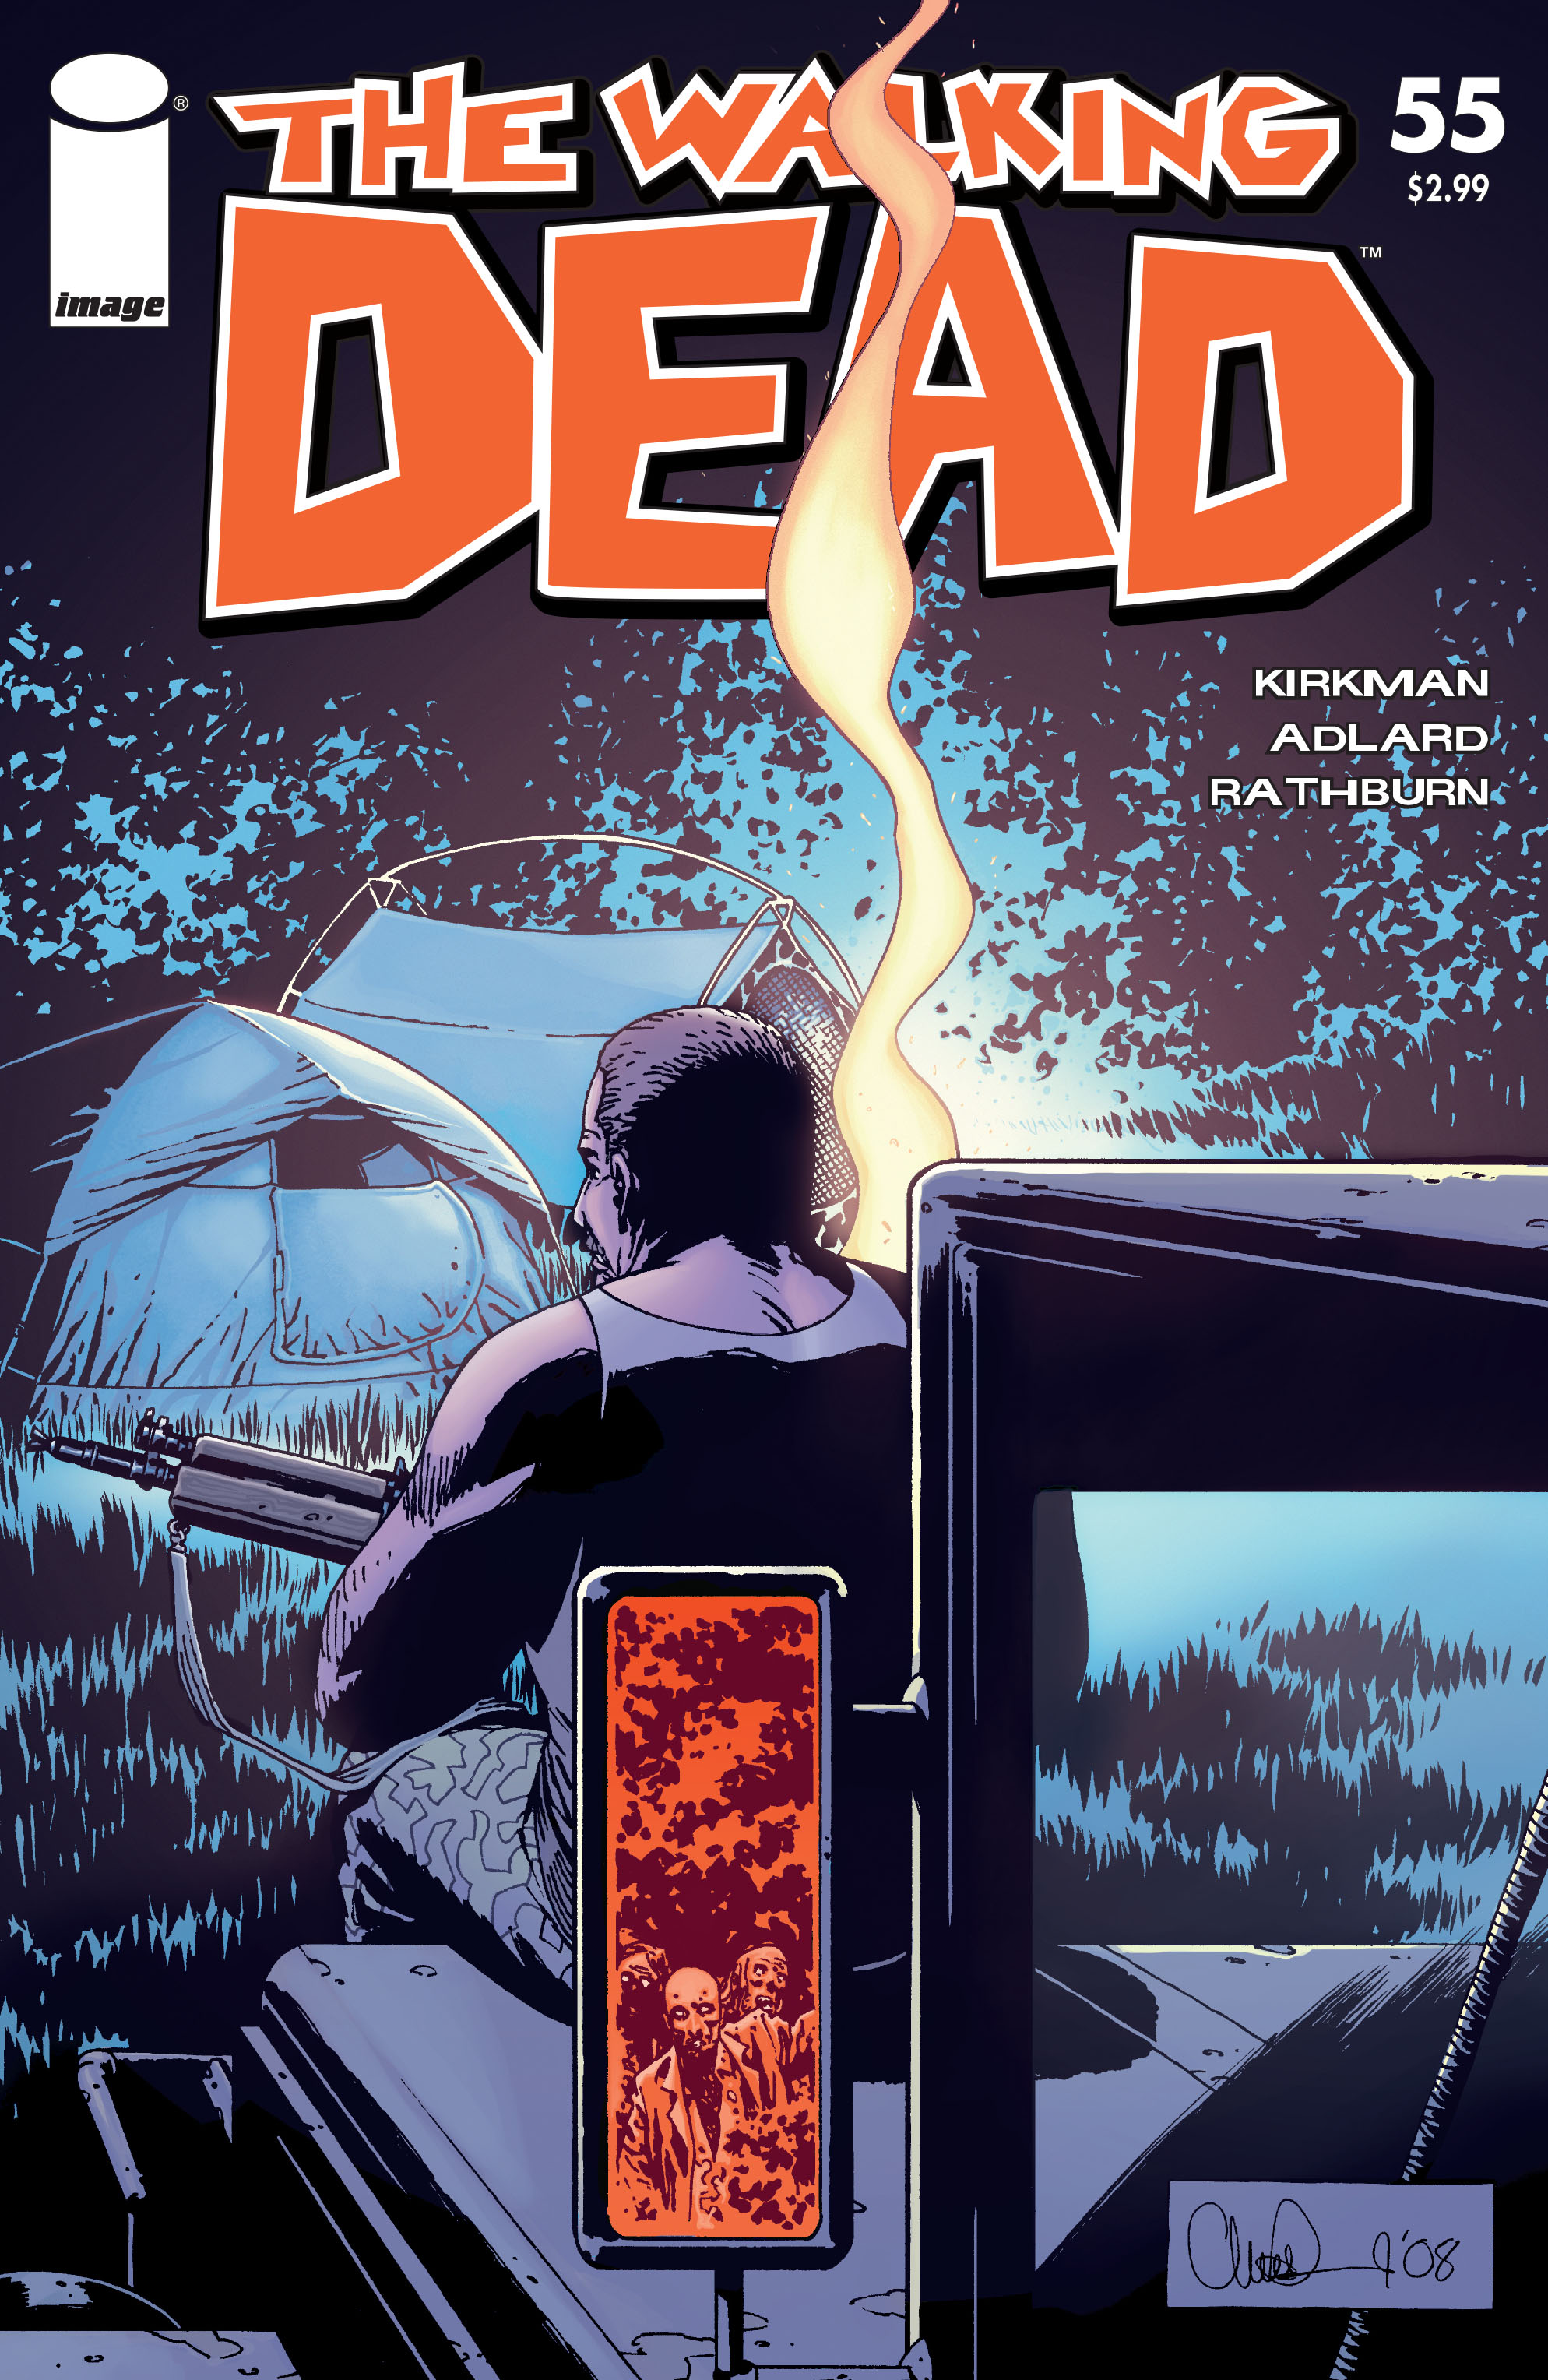 The Walking Dead 55 Page 1